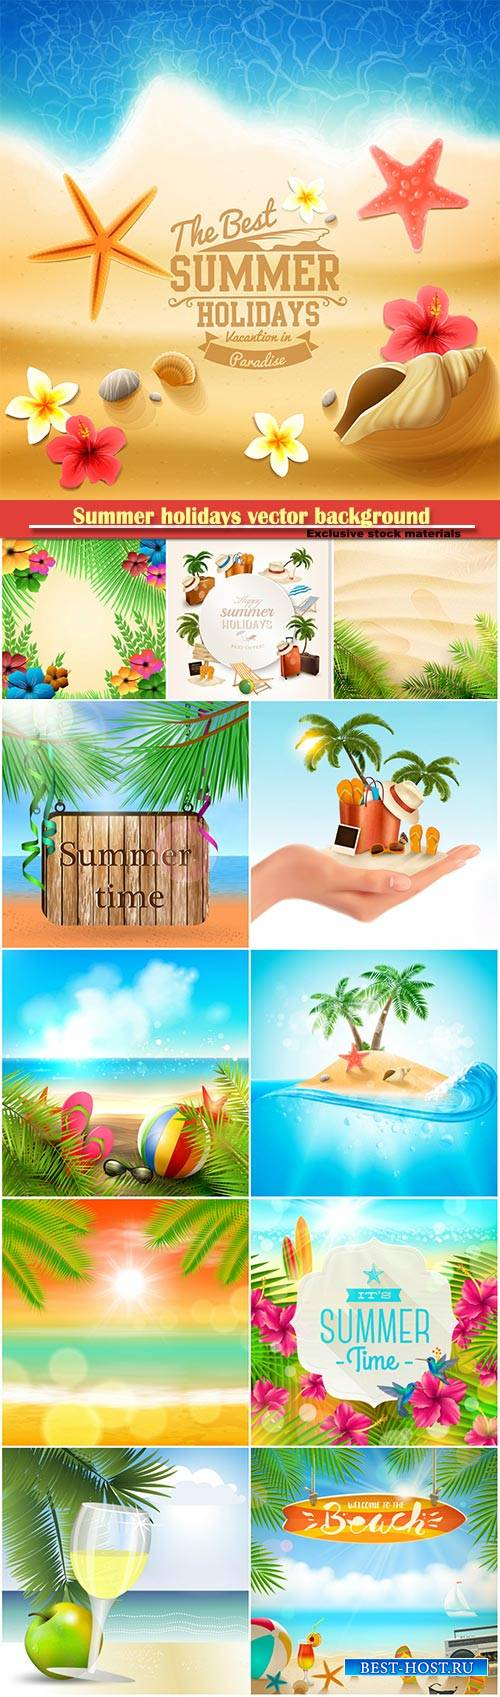 Summer holidays vector background, tropical beach, sea, fresh cocktails, sa ...